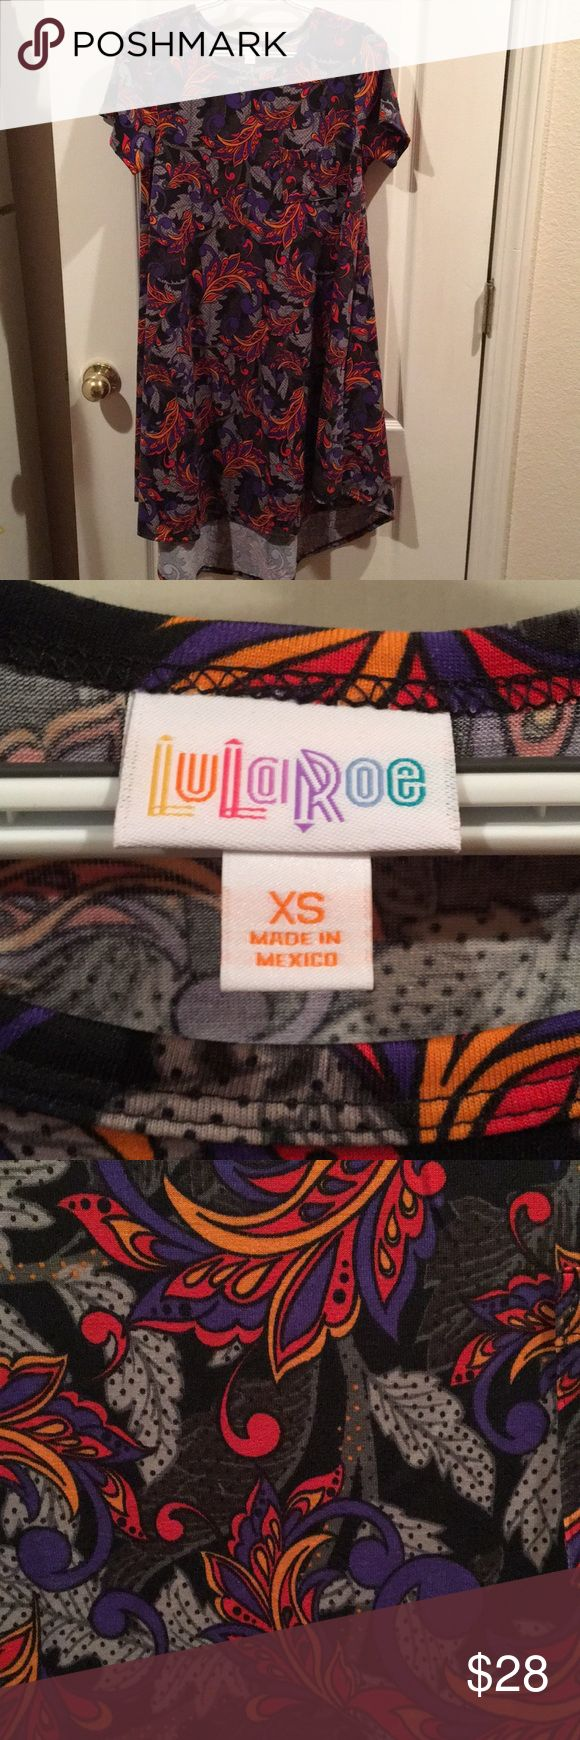 Lularoe Carly Dress-XS This Carly has been worn maybe twice but is in excellent condition. Carly size XS fits size 2-4 but I wear 4-6 and it fits perfect. Make me an offer or bundle to save! LuLaRoe Dresses High Low